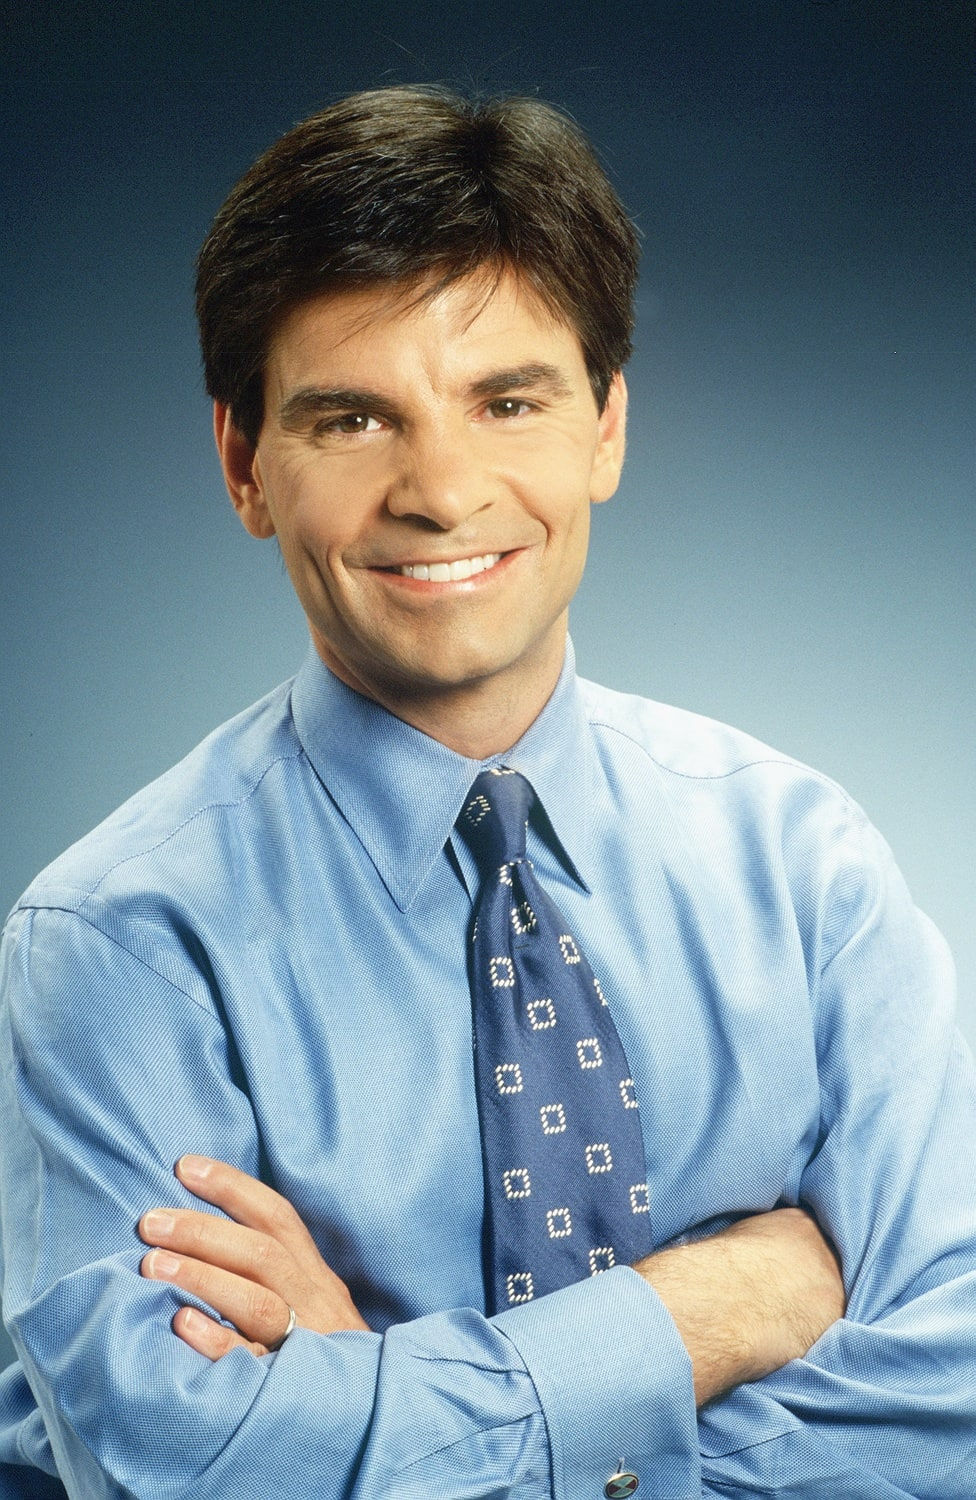 george stephanopoulos biogeorge stephanopoulos instagram, george stephanopoulos height, george stephanopoulos clinton, george stephanopoulos friends, george stephanopoulos obama interview, george stephanopoulos twitter, george stephanopoulos this week, george stephanopoulos wiki, george stephanopoulos bio, george stephanopoulos wife, george stephanopoulos net worth, george stephanopoulos salary, george stephanopoulos 1994, george stephanopoulos leaving gma, george stephanopoulos scandal, george stephanopoulos gay, george stephanopoulos family, george stephanopoulos darren wilson, george stephanopoulos apology, george stephanopoulos daughters